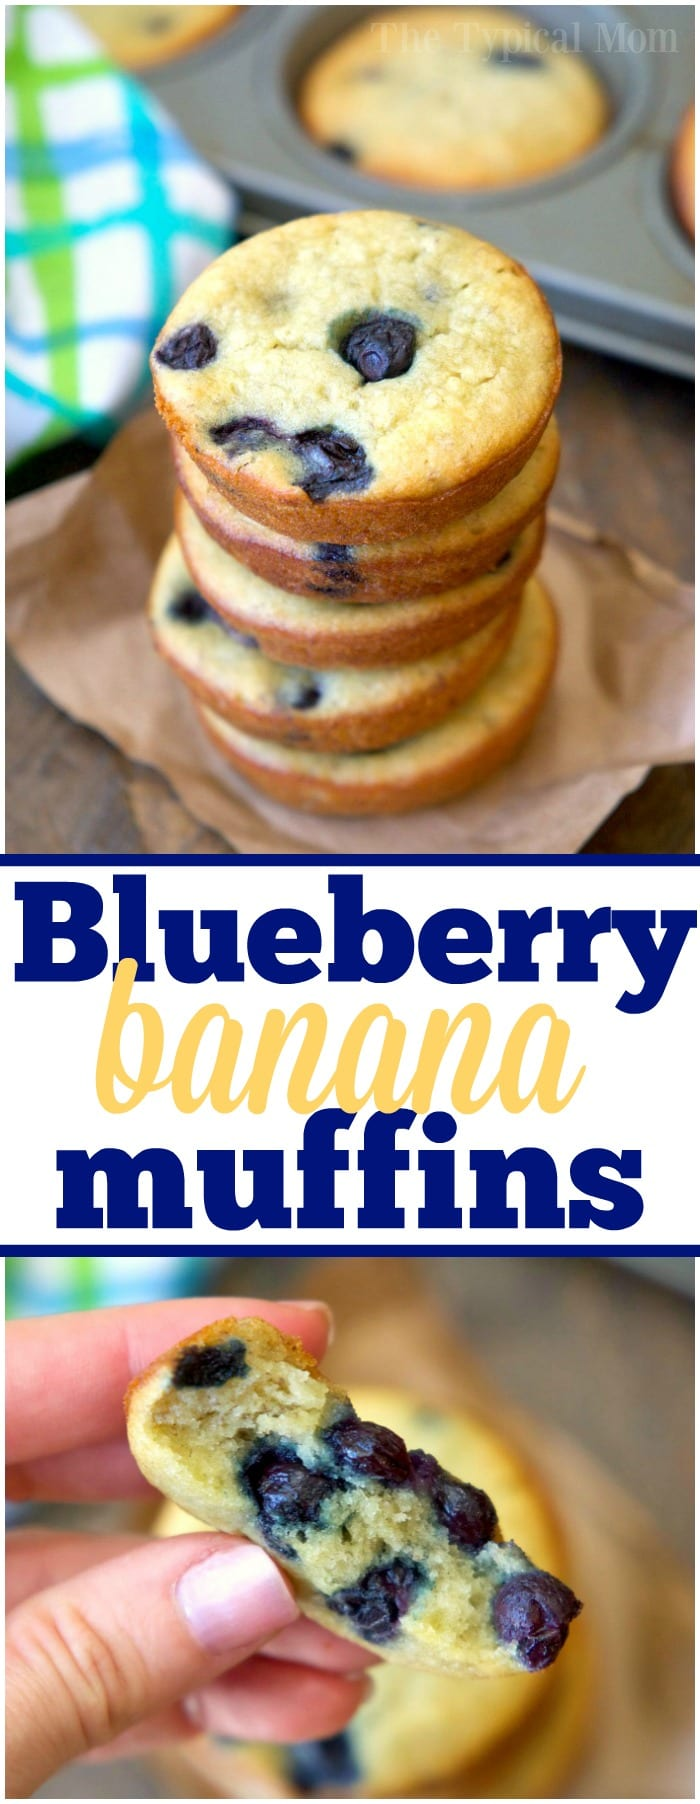 Sour Cream blueberry banana muffins are so moist and a great way to use overripe bananas! Easy to mix together they're perfect for breakfast or brunch.